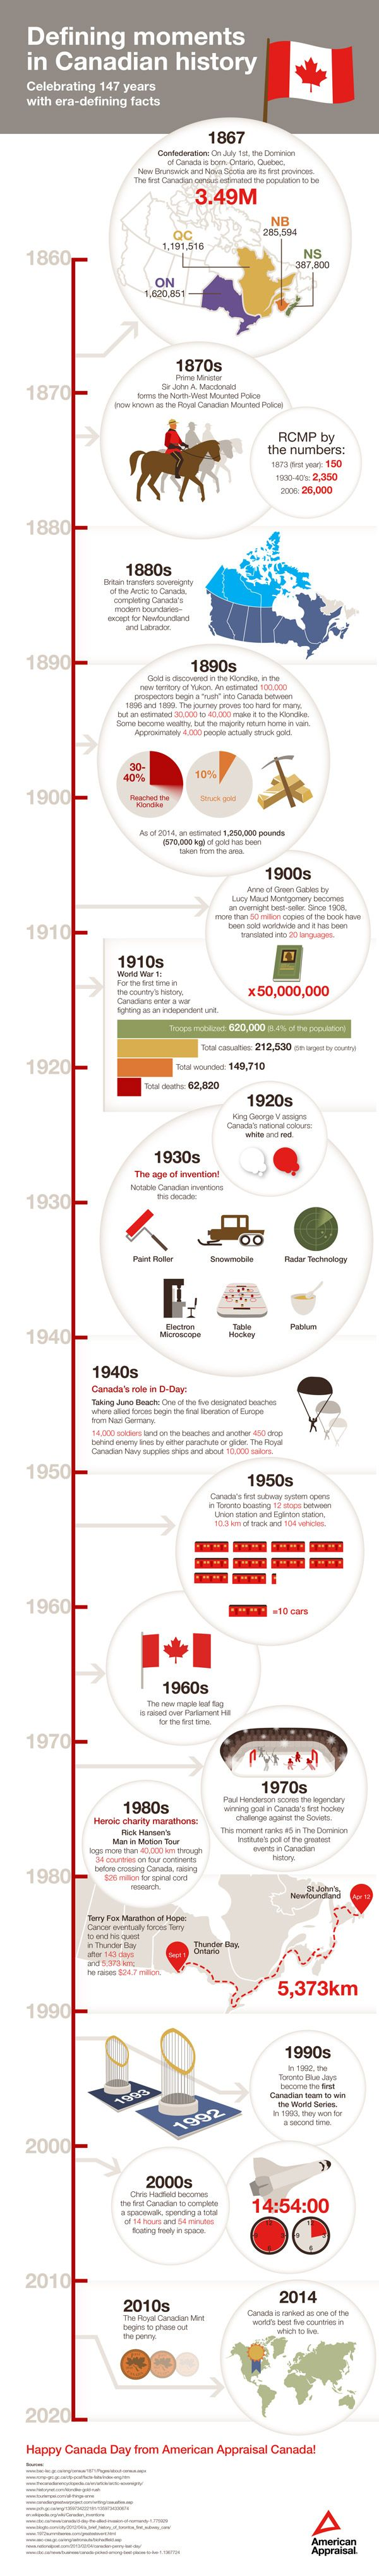 Defining moments in Canadian history - http://www.coolinfoimages.com/infographics/defining-moments-in-canadian-history/